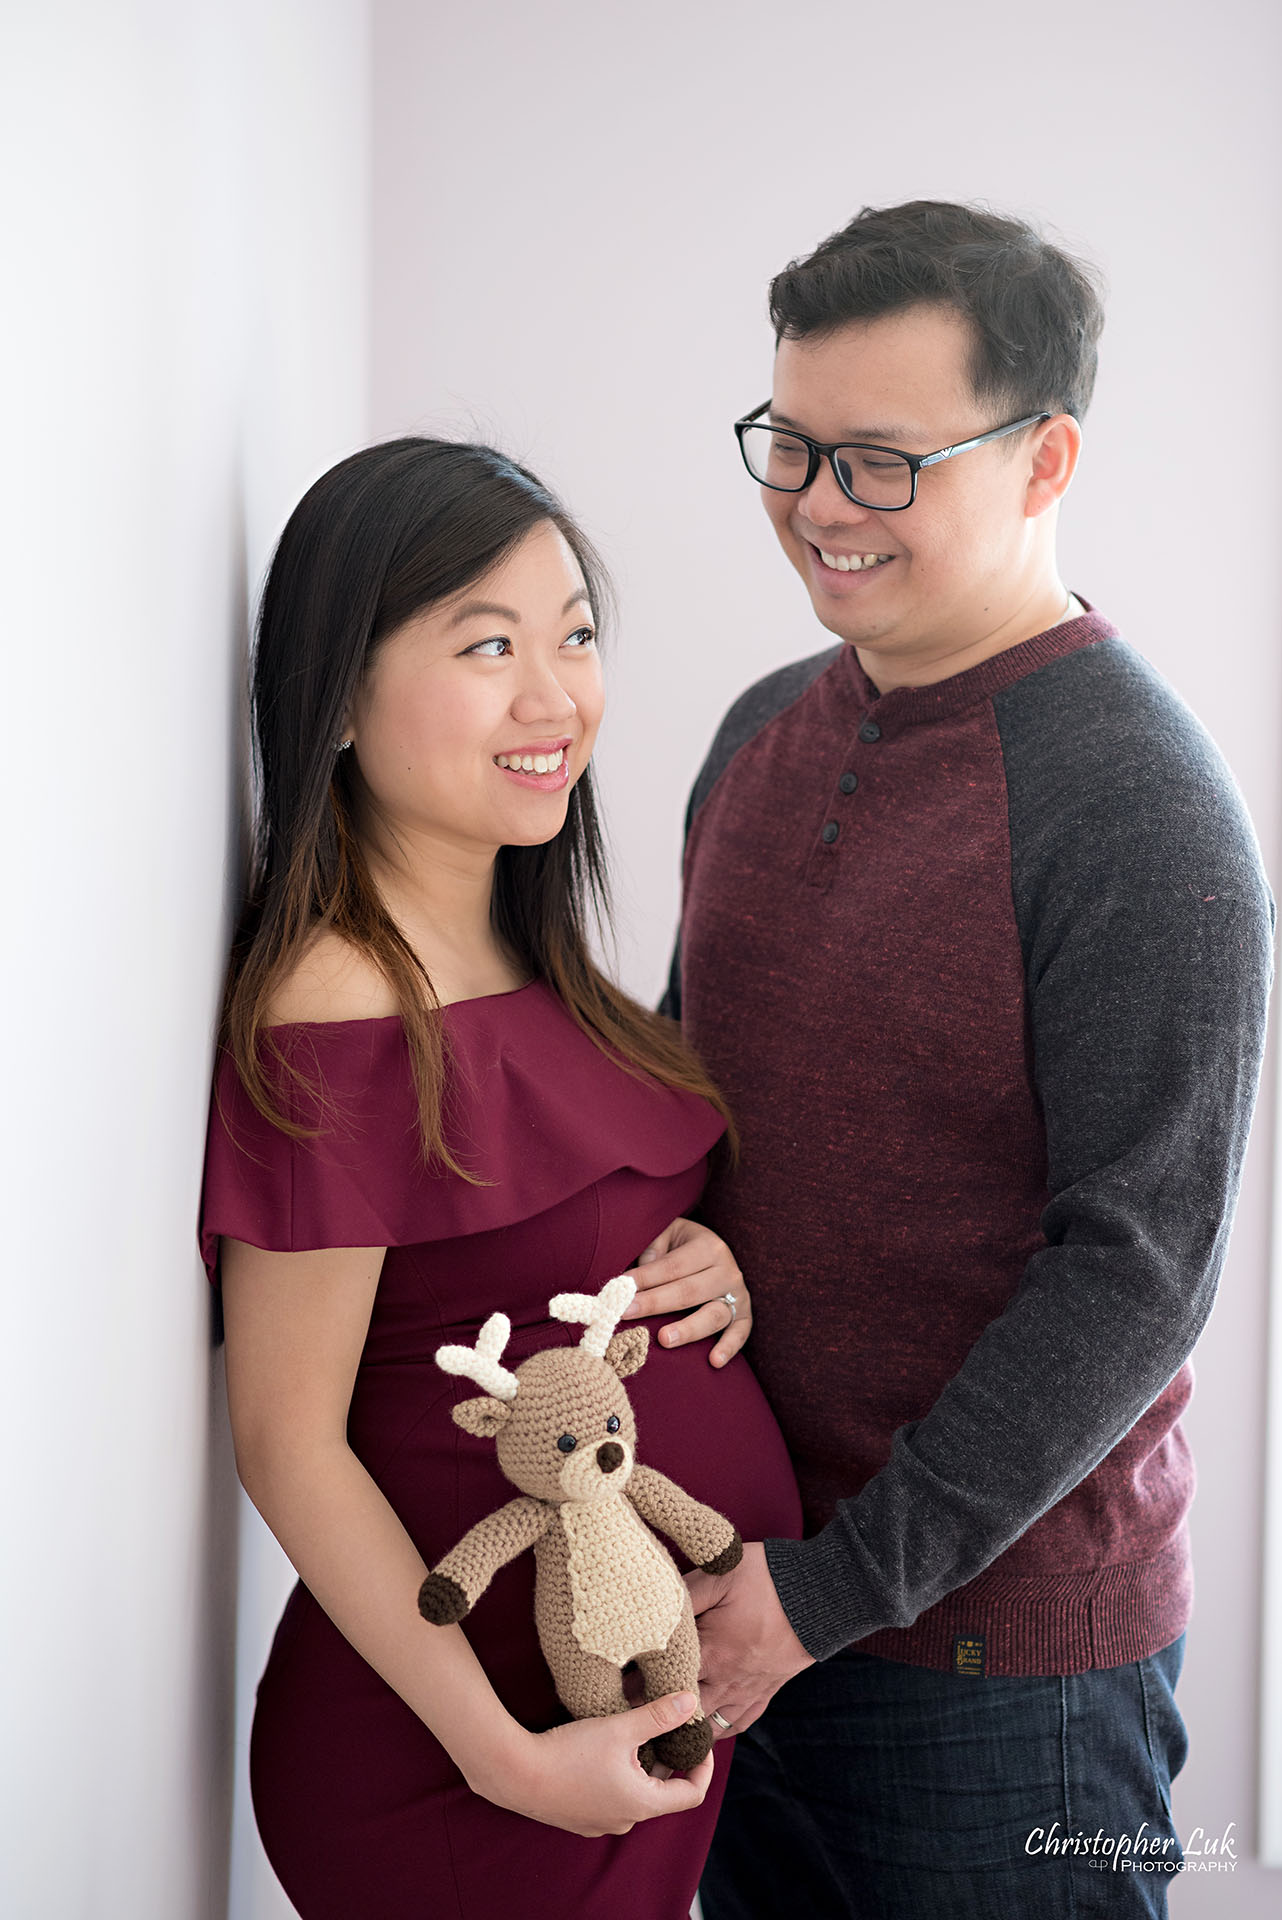 Christopher Luk Toronto Wedding Family Maternity Photographer - Markham Richmond Hill Toronto Natural Candid Photojournalistic Mom Dad Husband Wife Baby Bump Baby Pregnant Pregnancy Stuffed Animal Moose Elk